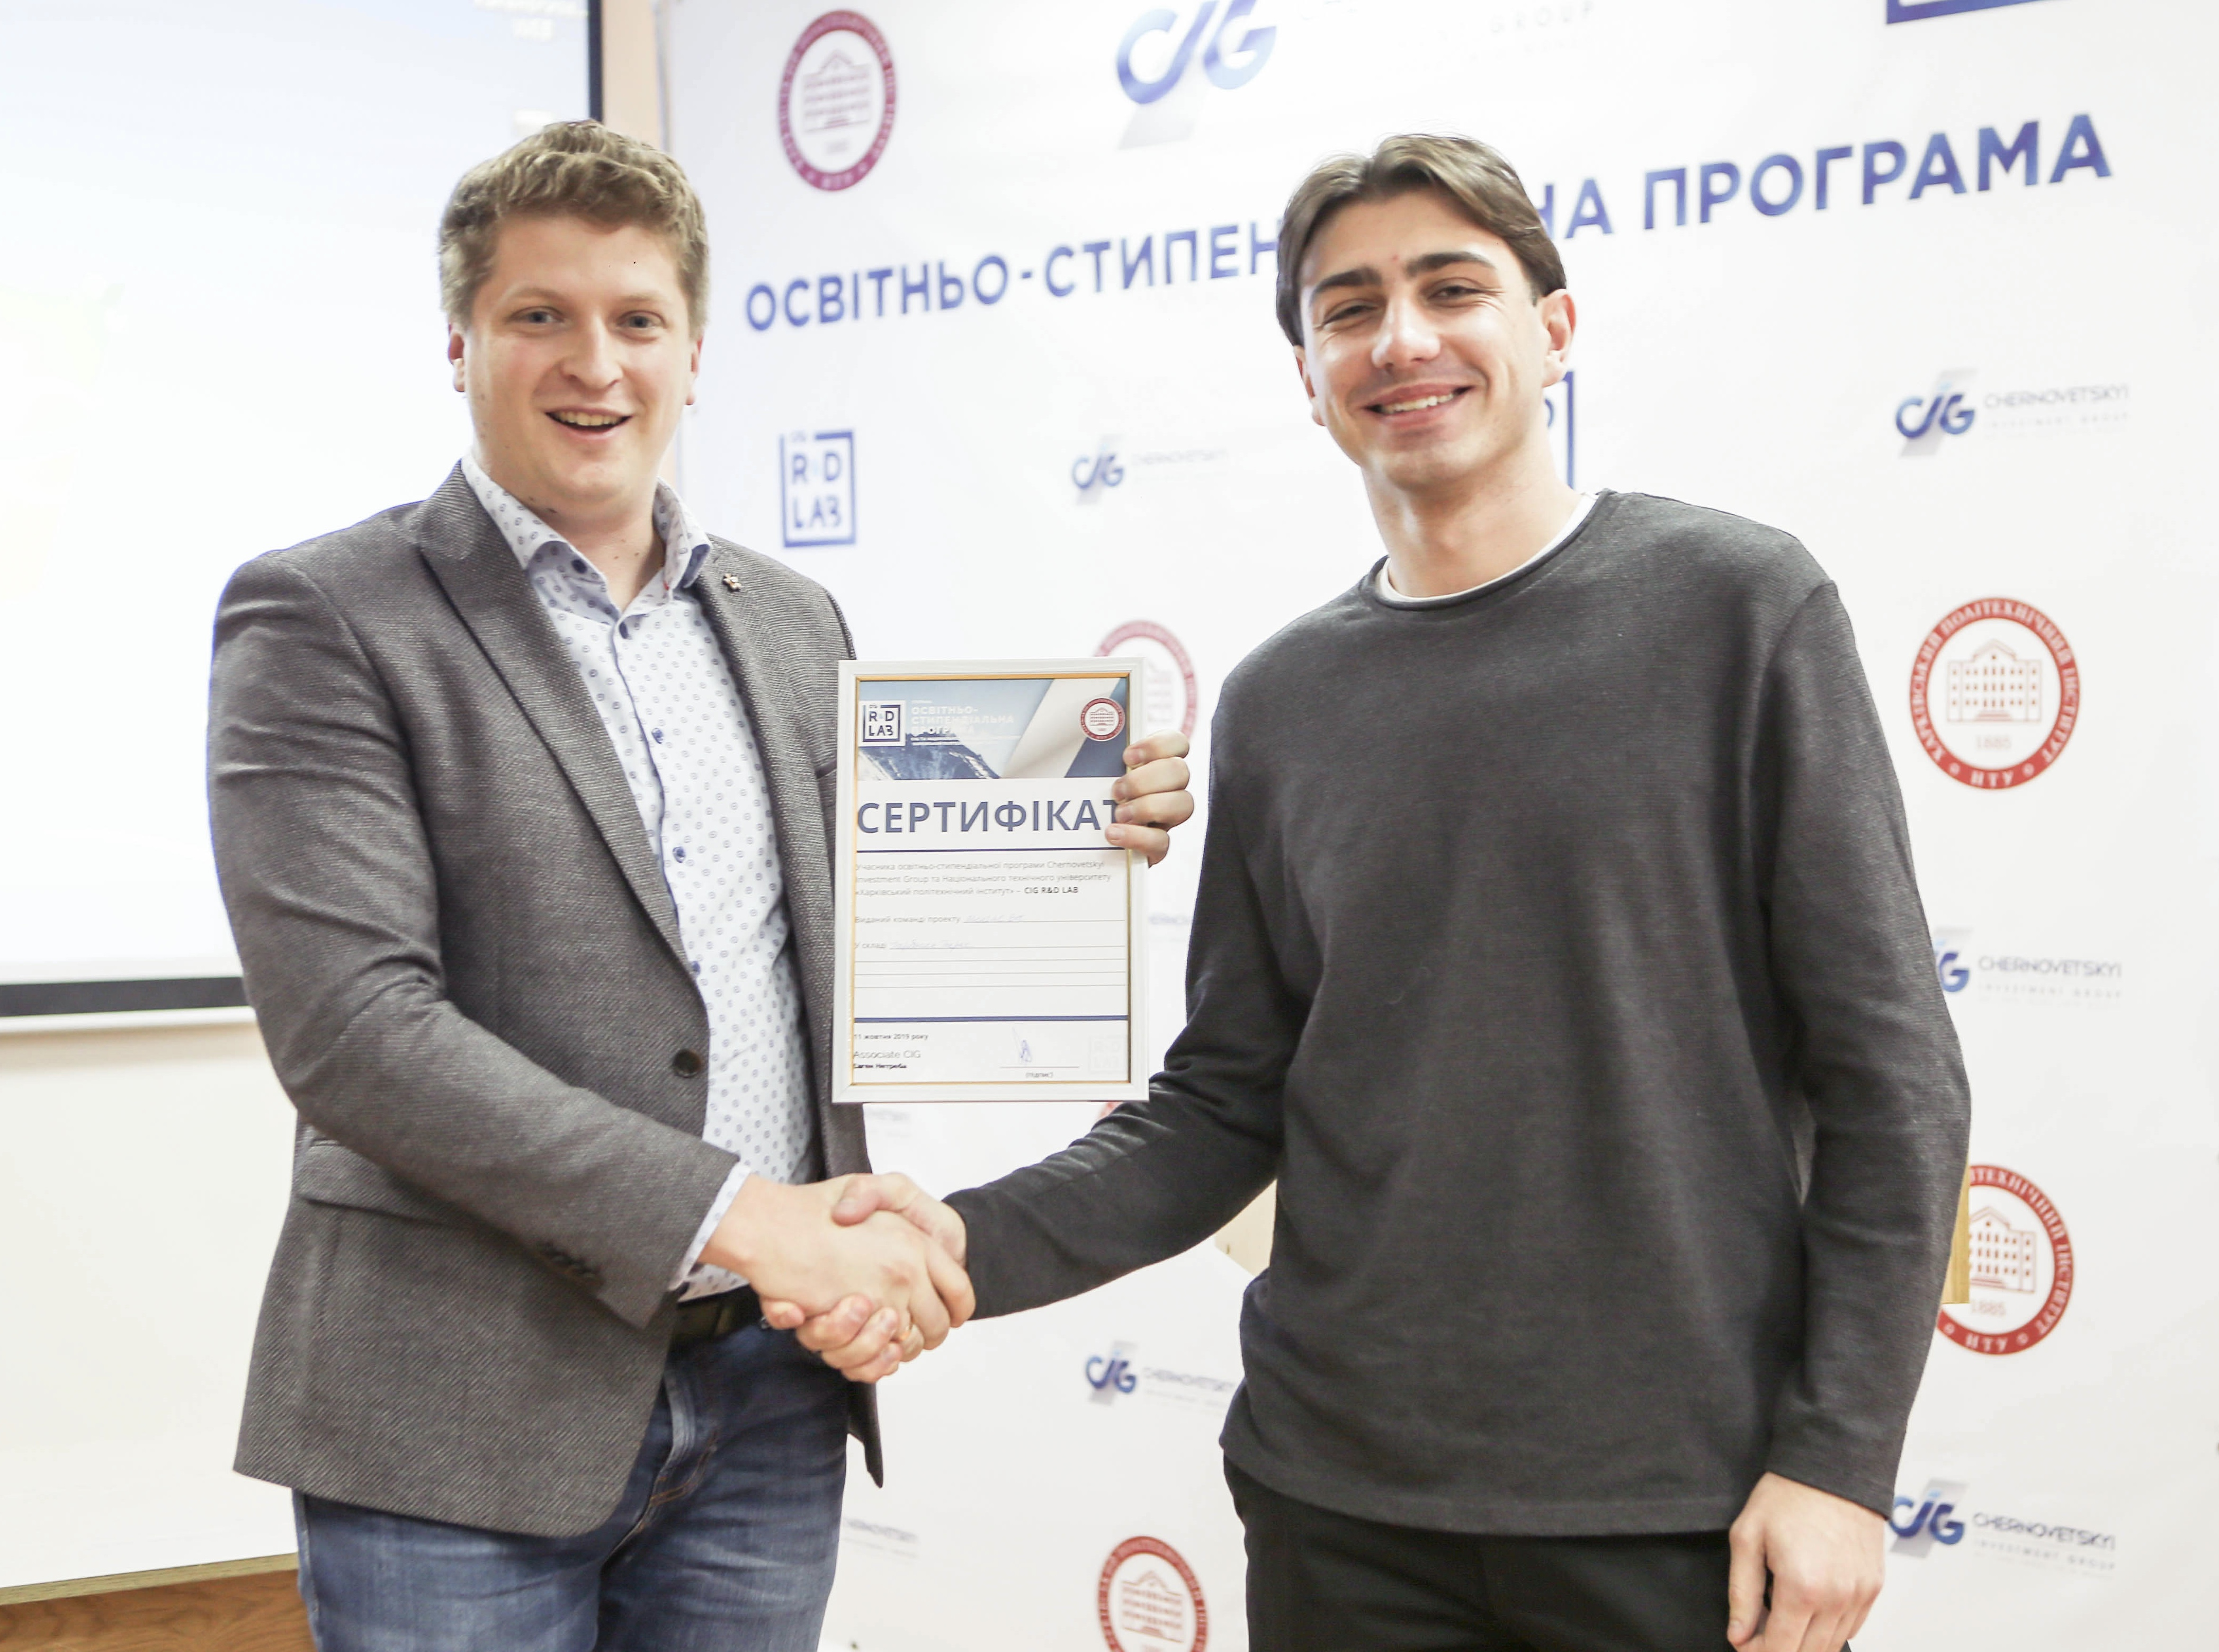 CIG R&D LAB: Kharkiv Students Presented Their Startups